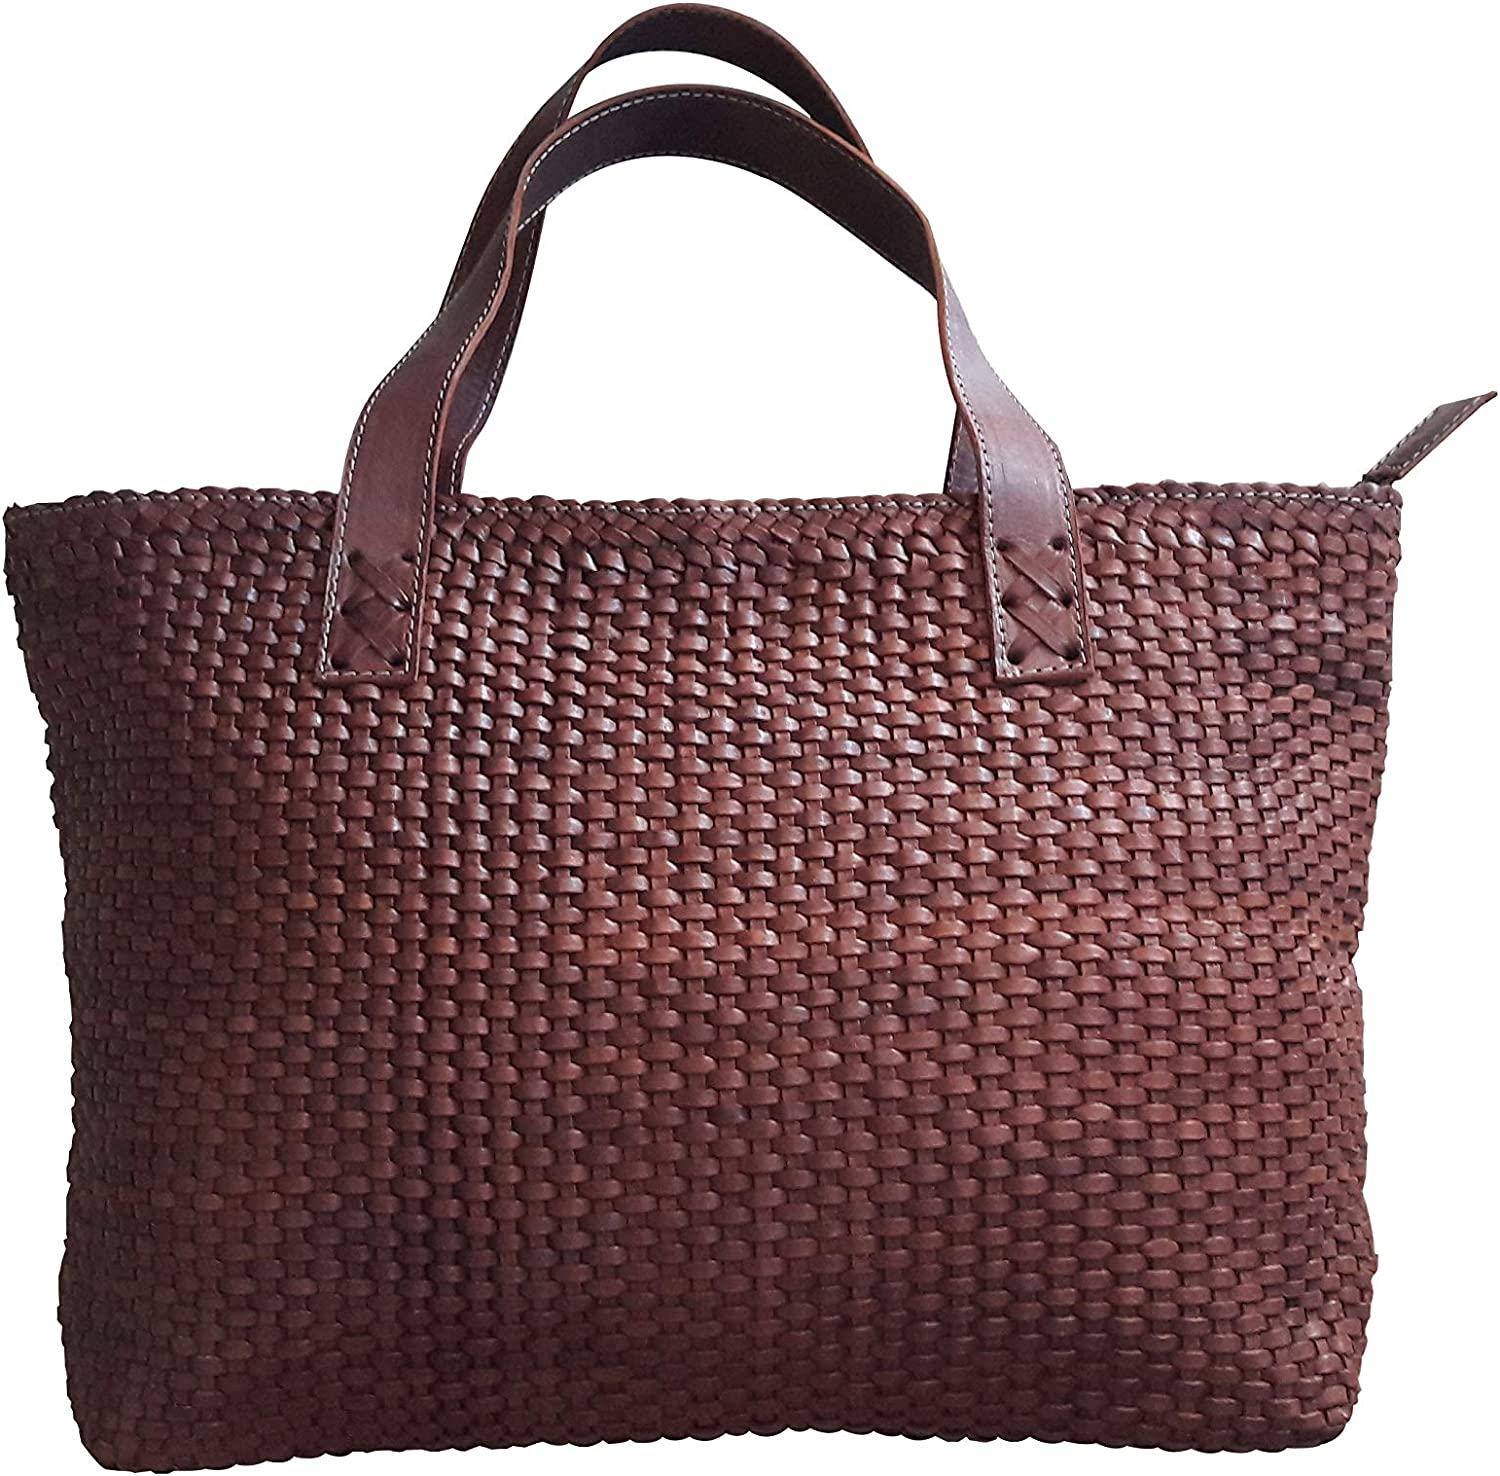 ethnocraft Leather Tote bag Max SALENEW very popular! 40% OFF with Size woven Brown pattern One